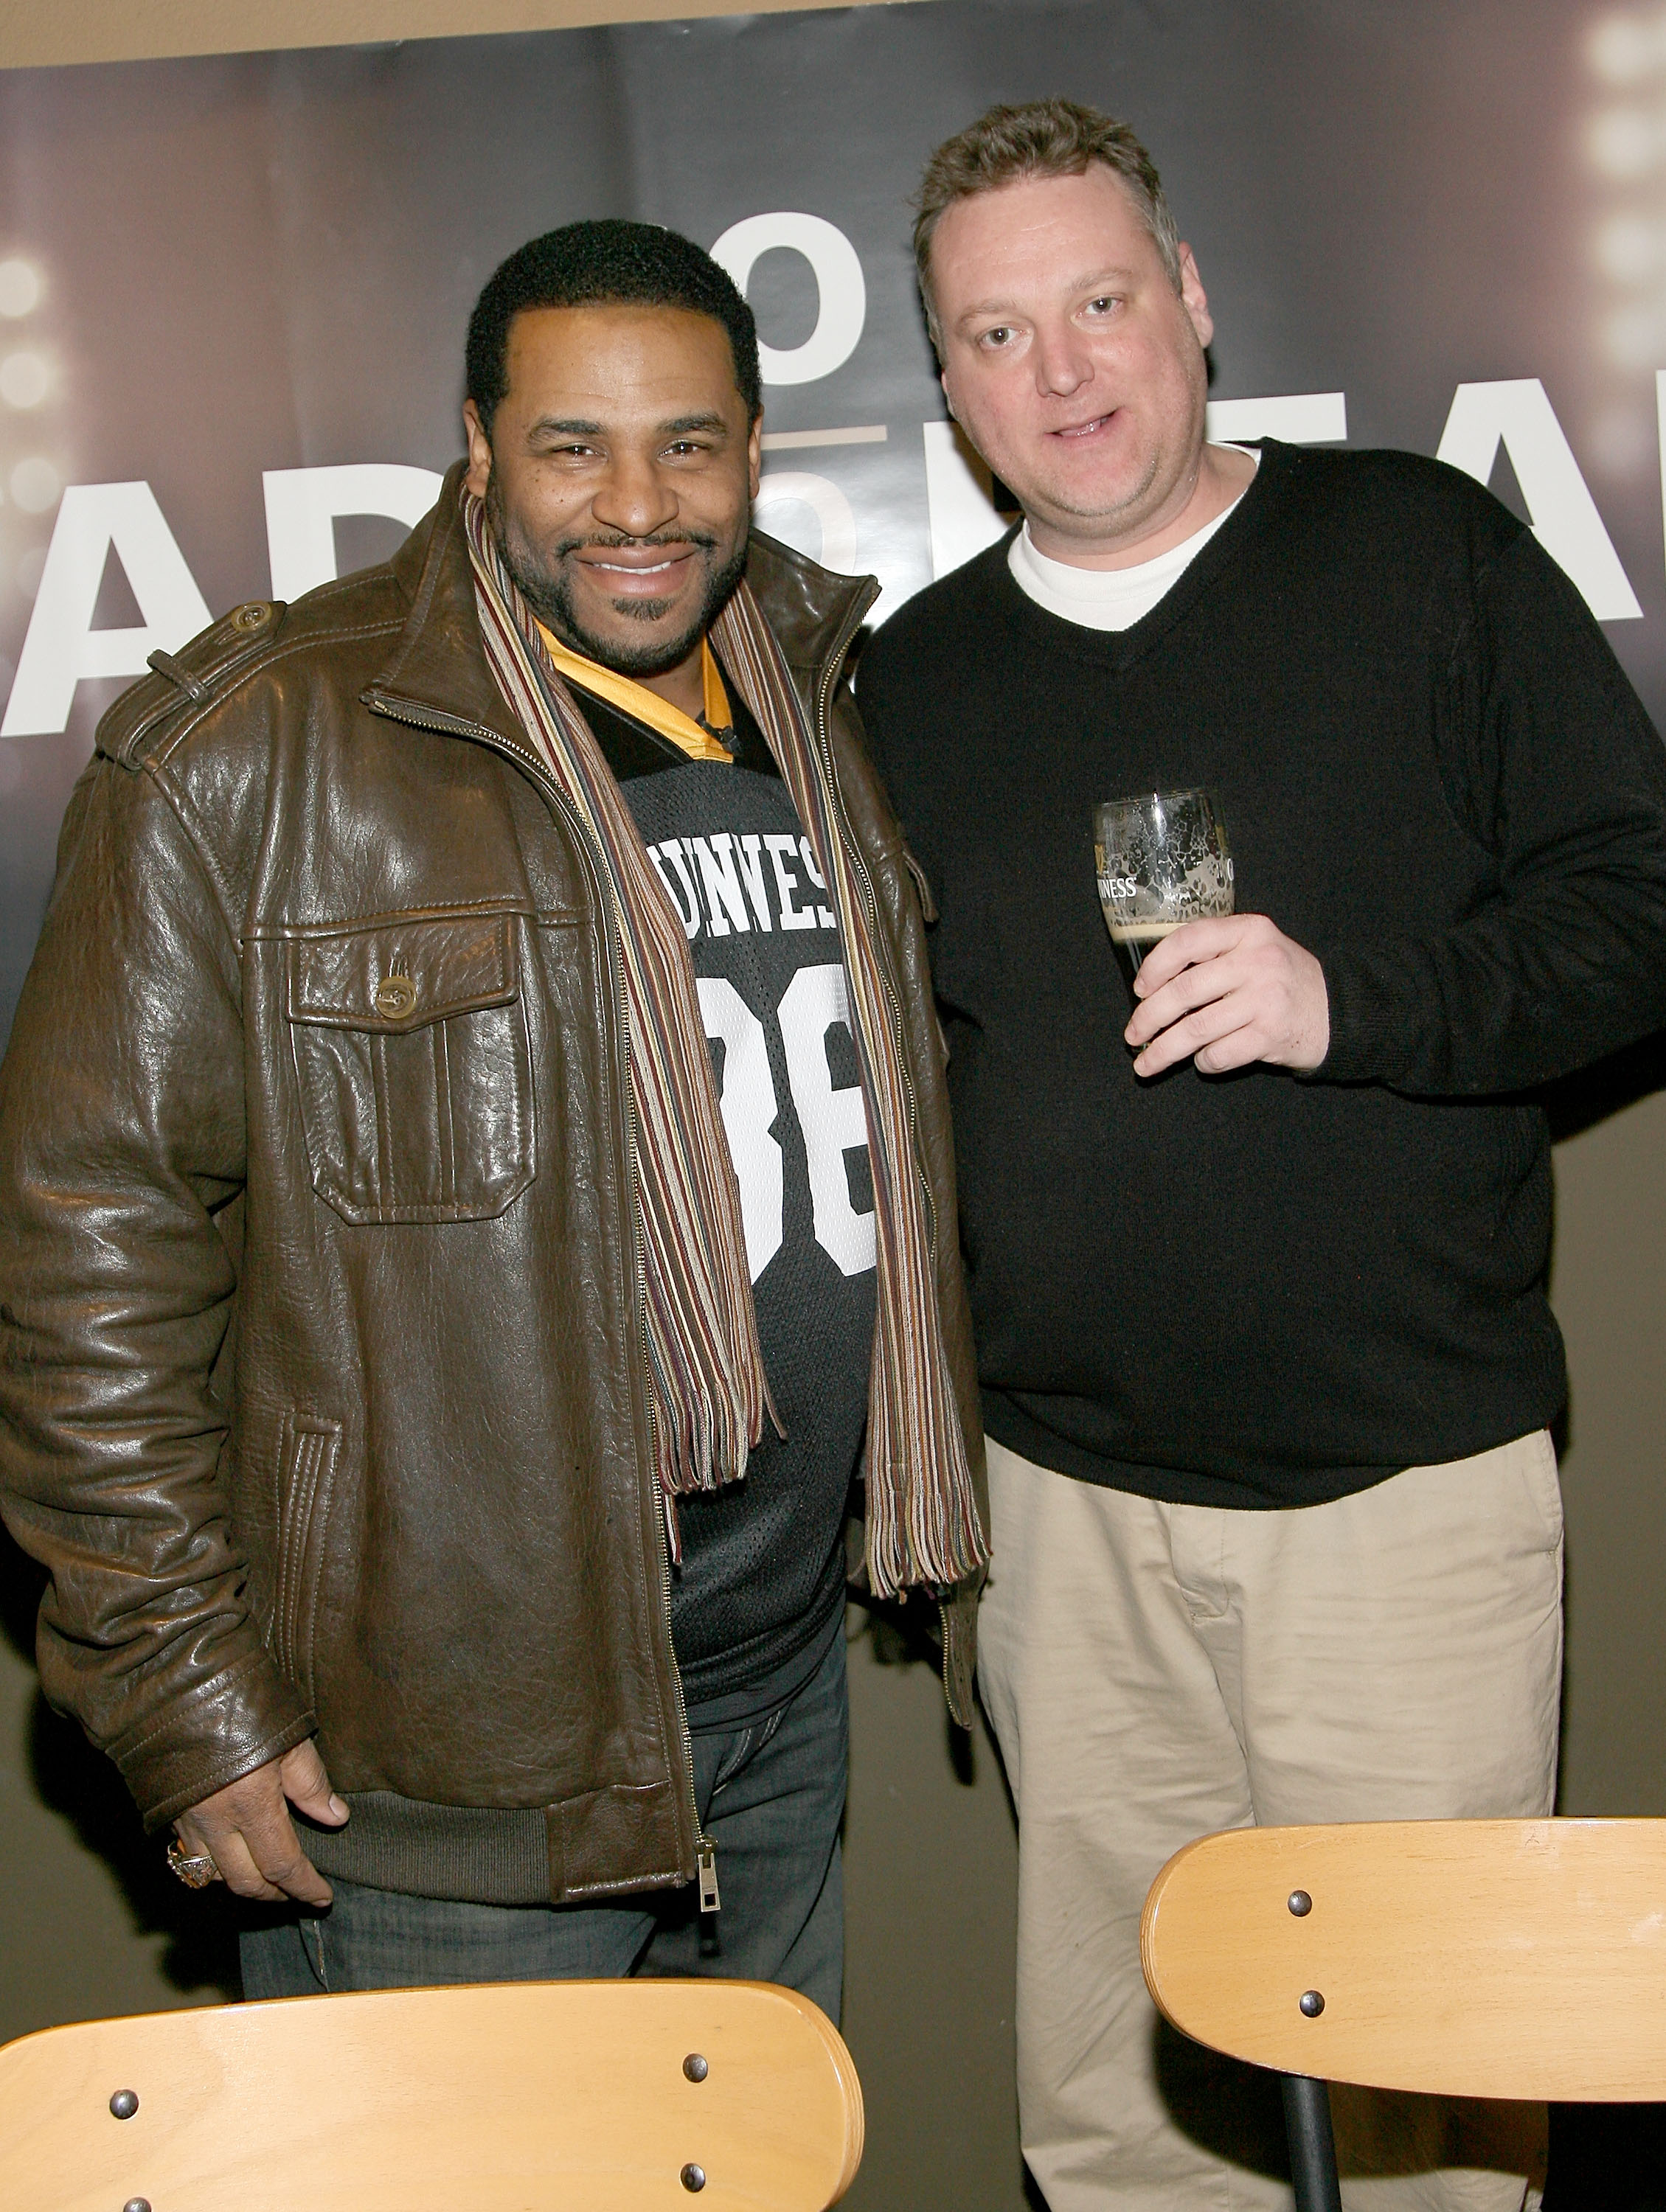 ARLINGTON, TX - FEBRUARY 03:  Former NFL player Jerome Bettis (Left) competes in the Guinness Perfect Pint Pour-Off at Buffalo Wild Wings on February 3, 2011 in Arlington, Texas.  (Photo by Maury Phillips/Getty Images for Guinness)